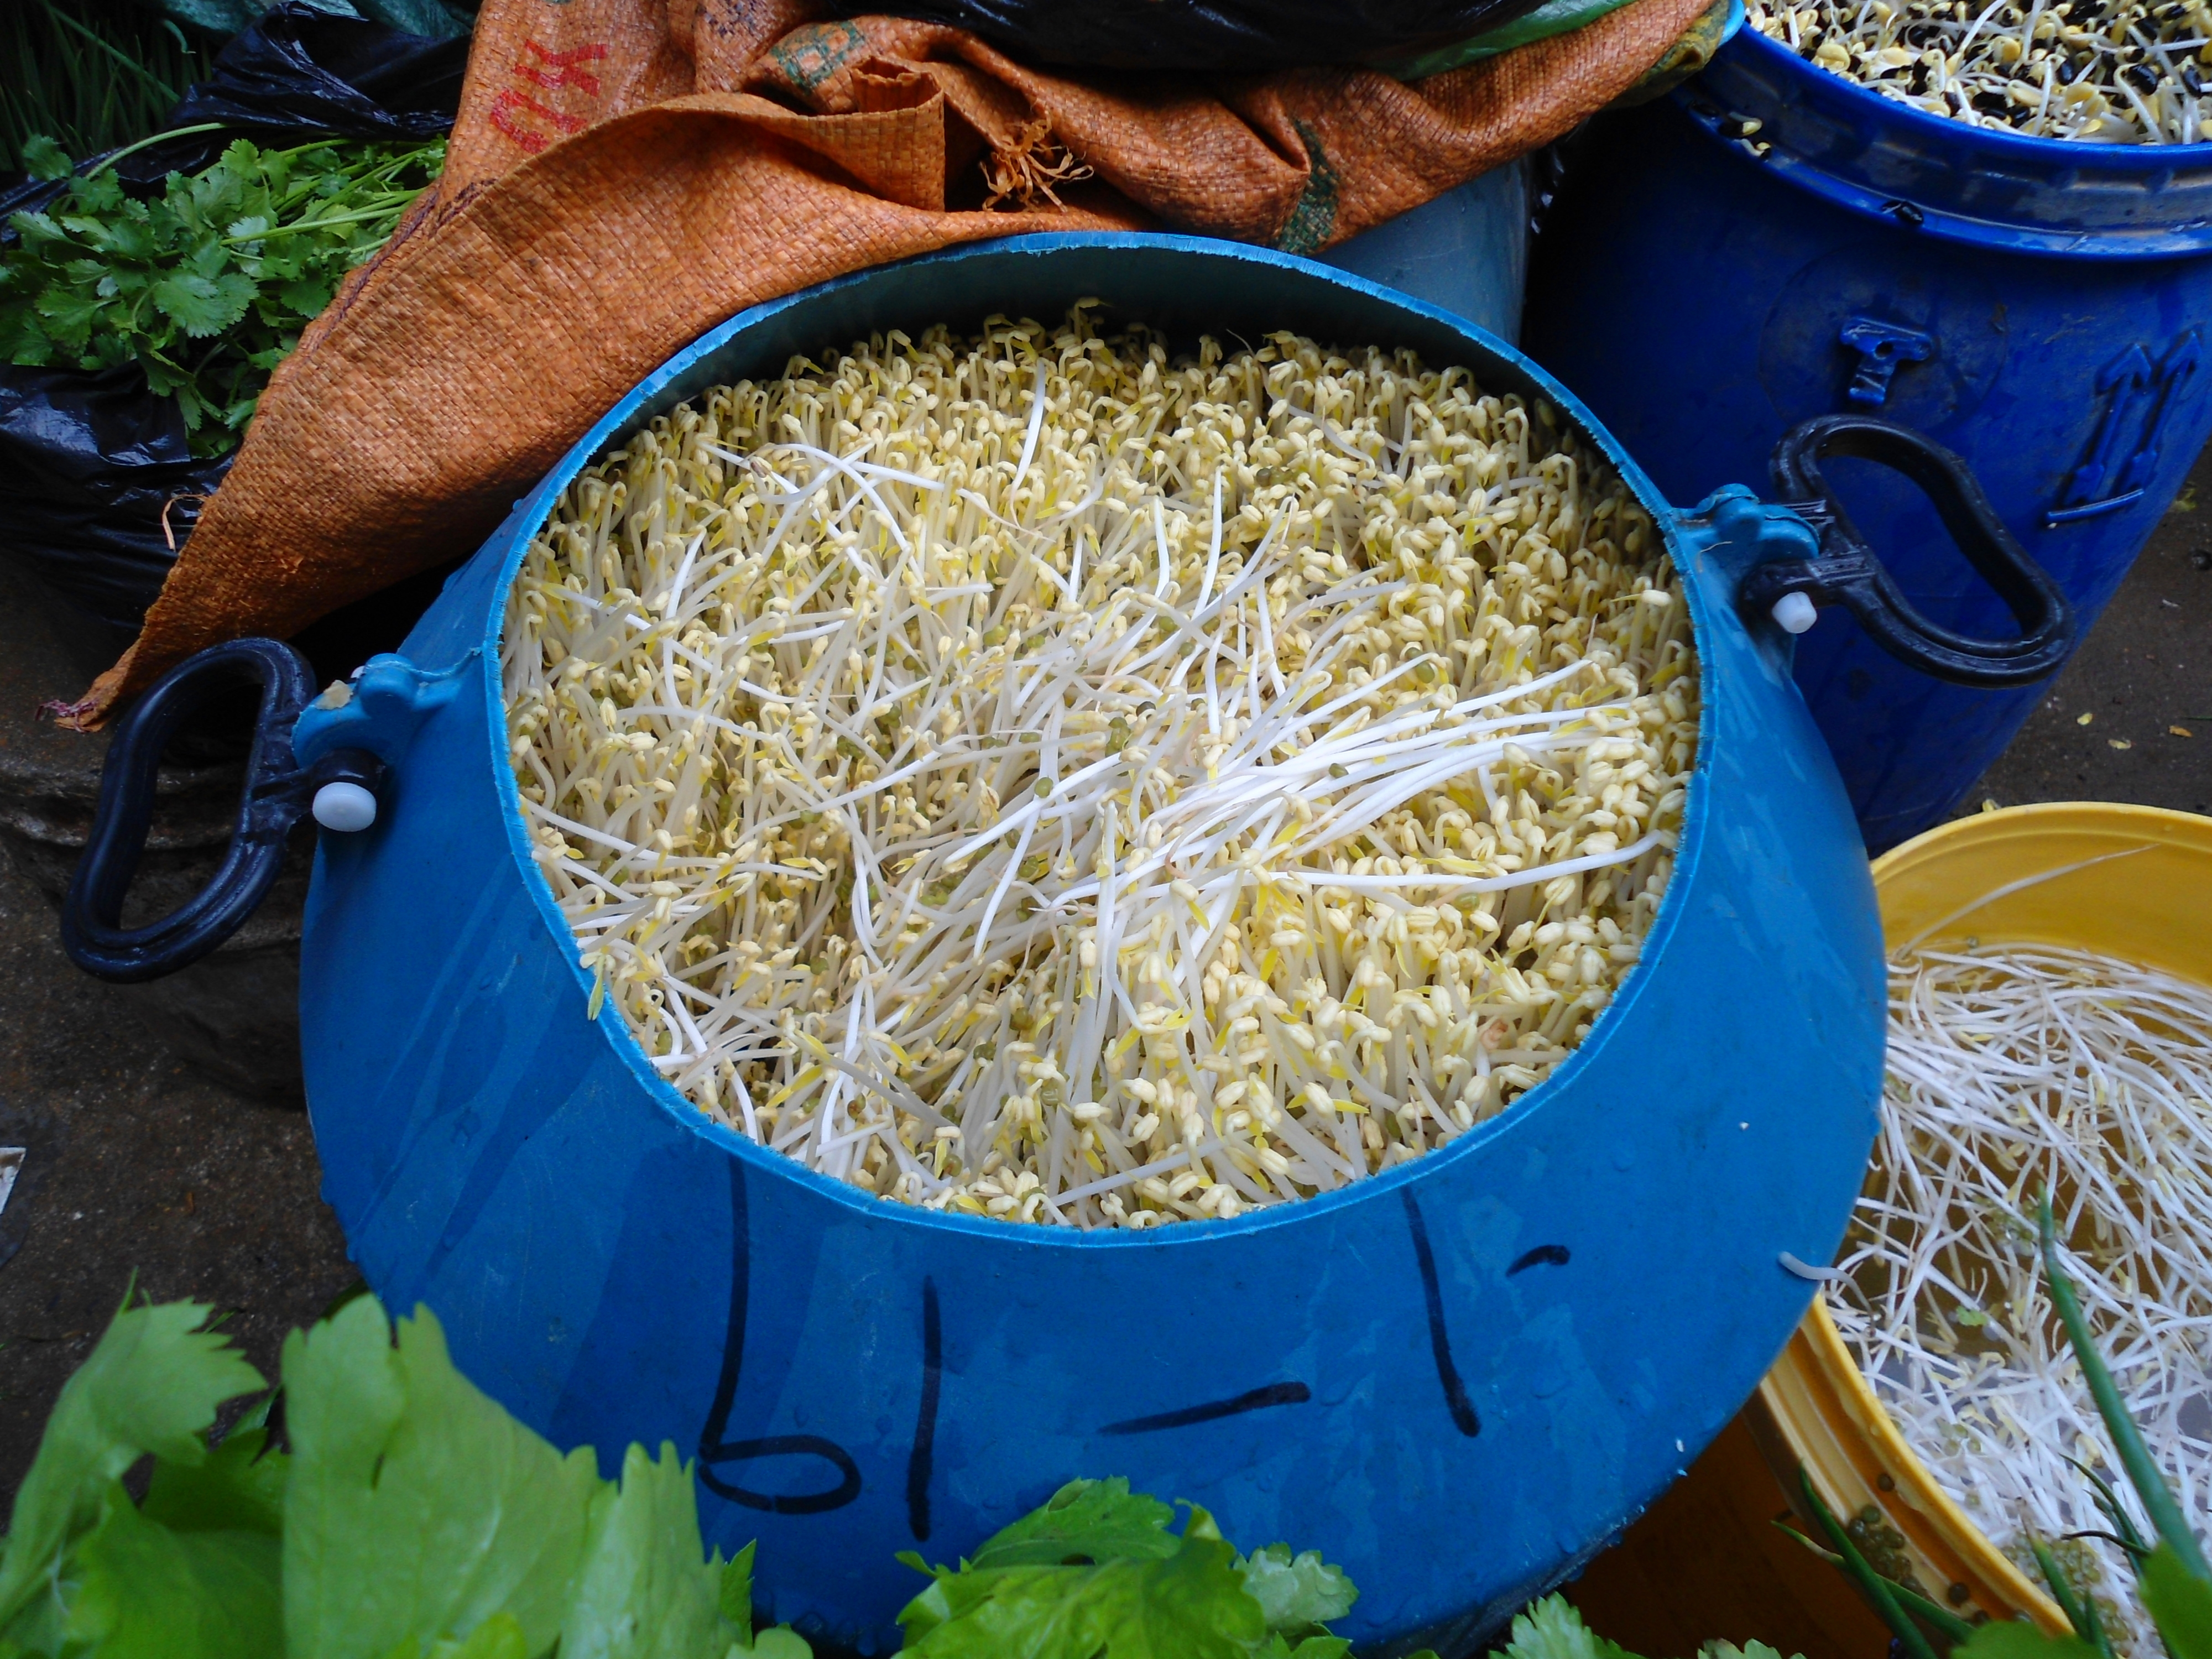 Bean sprouts in a market in Haikou City, Hainan Province, China